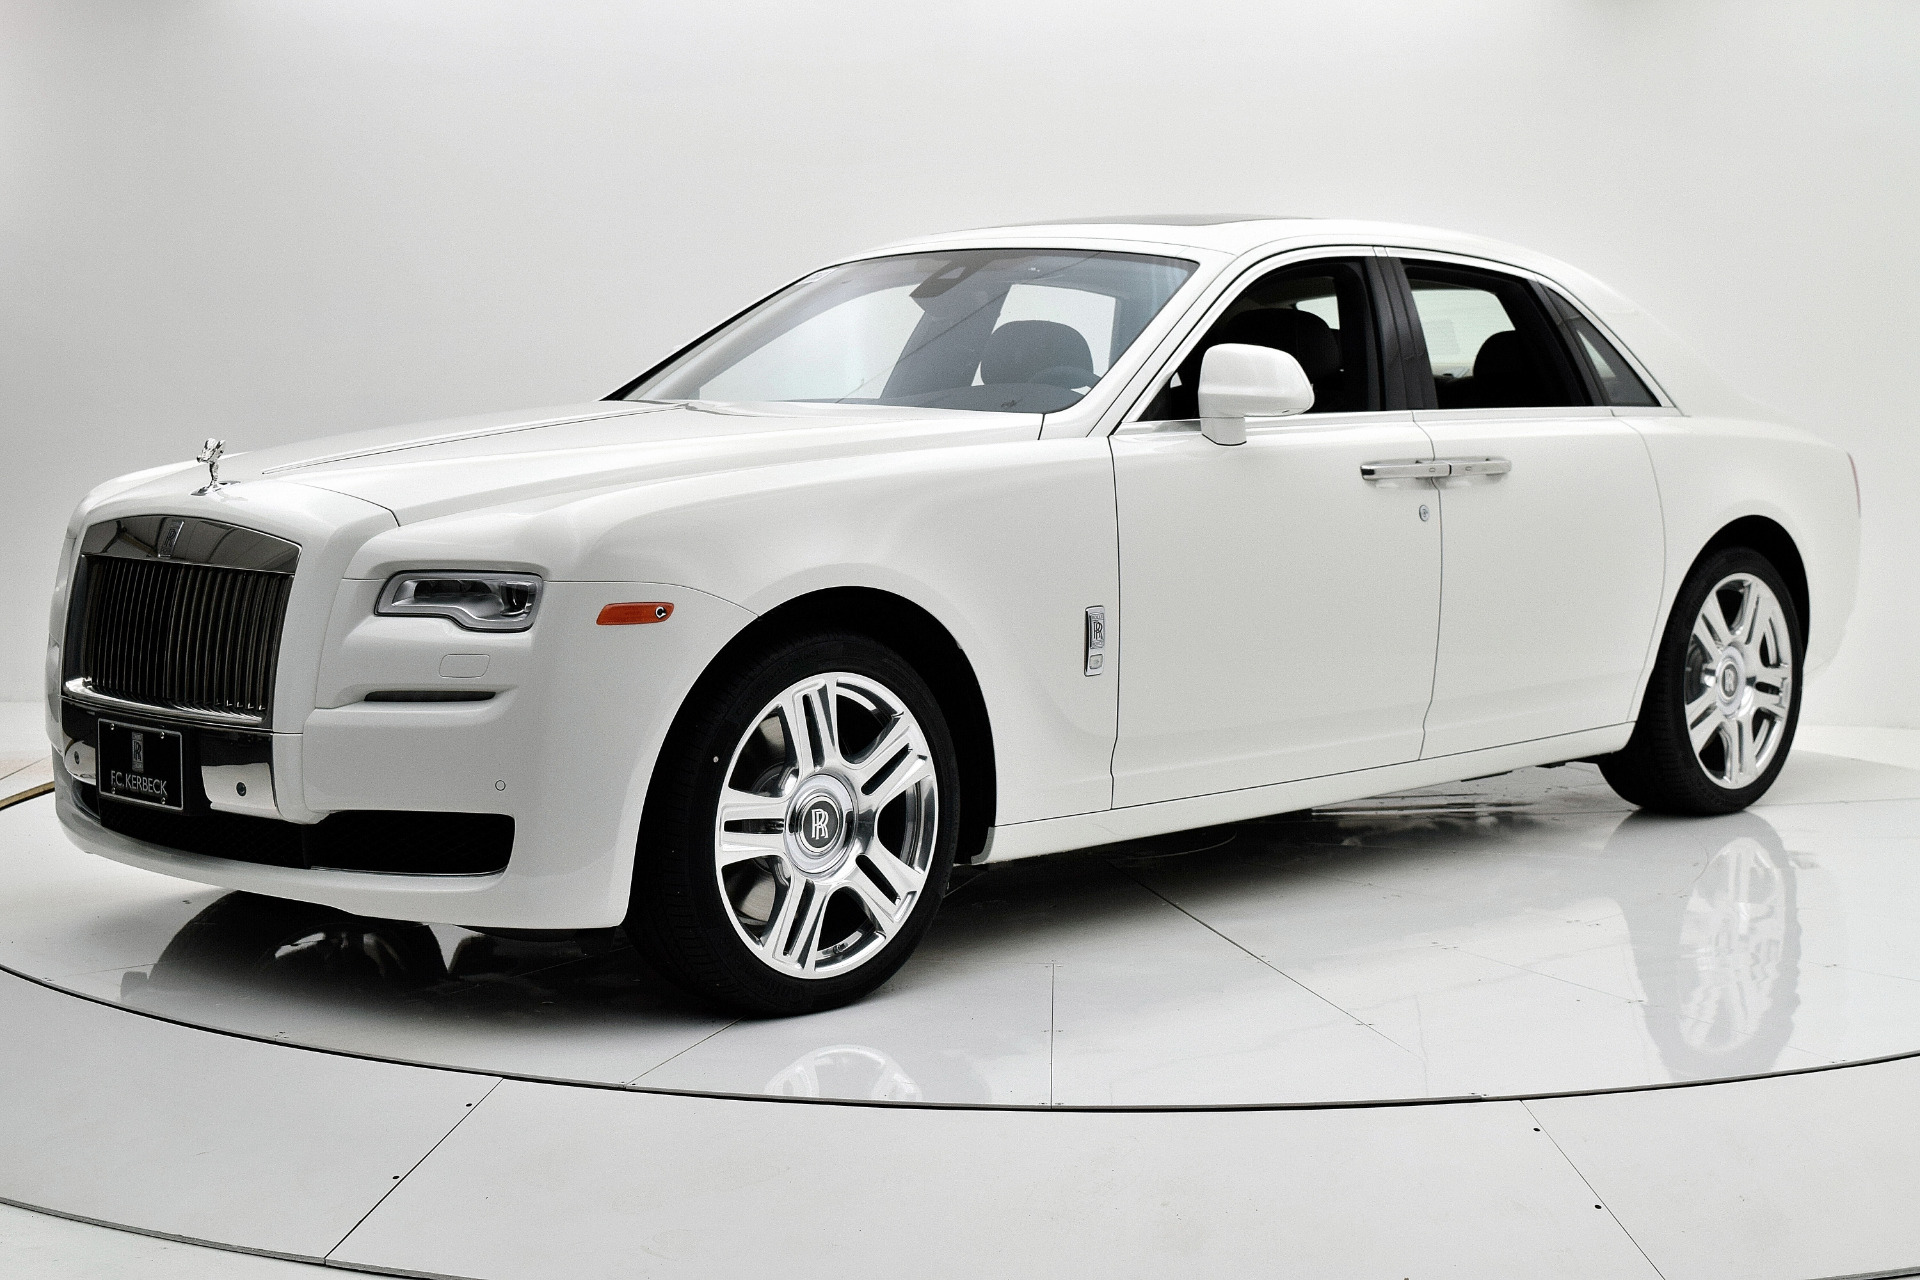 new 2017 rolls royce ghost for sale 269 000 fc kerbeck lamborghini palmyra n j stock 17r116. Black Bedroom Furniture Sets. Home Design Ideas